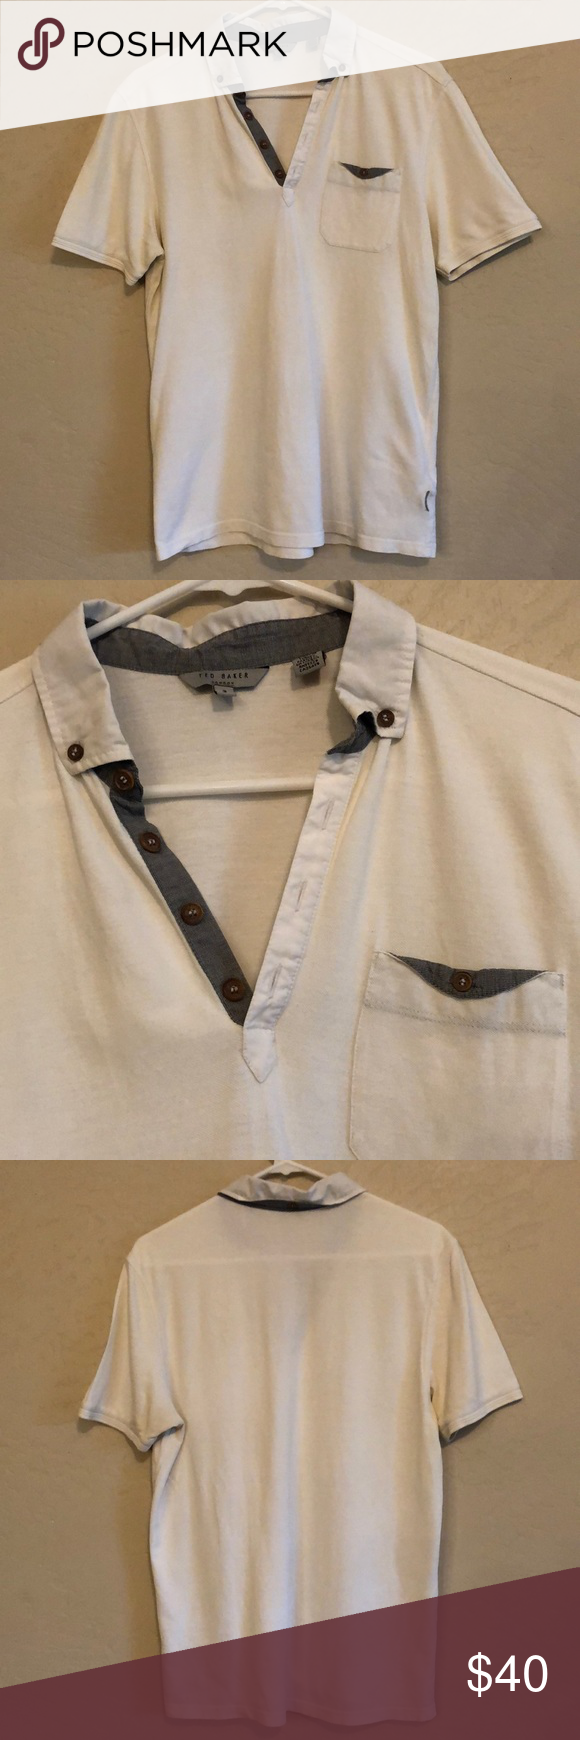 2f2ddefd1958bd Ted Baker London Polo shirt size 4 (large) This is a Ted Baker London